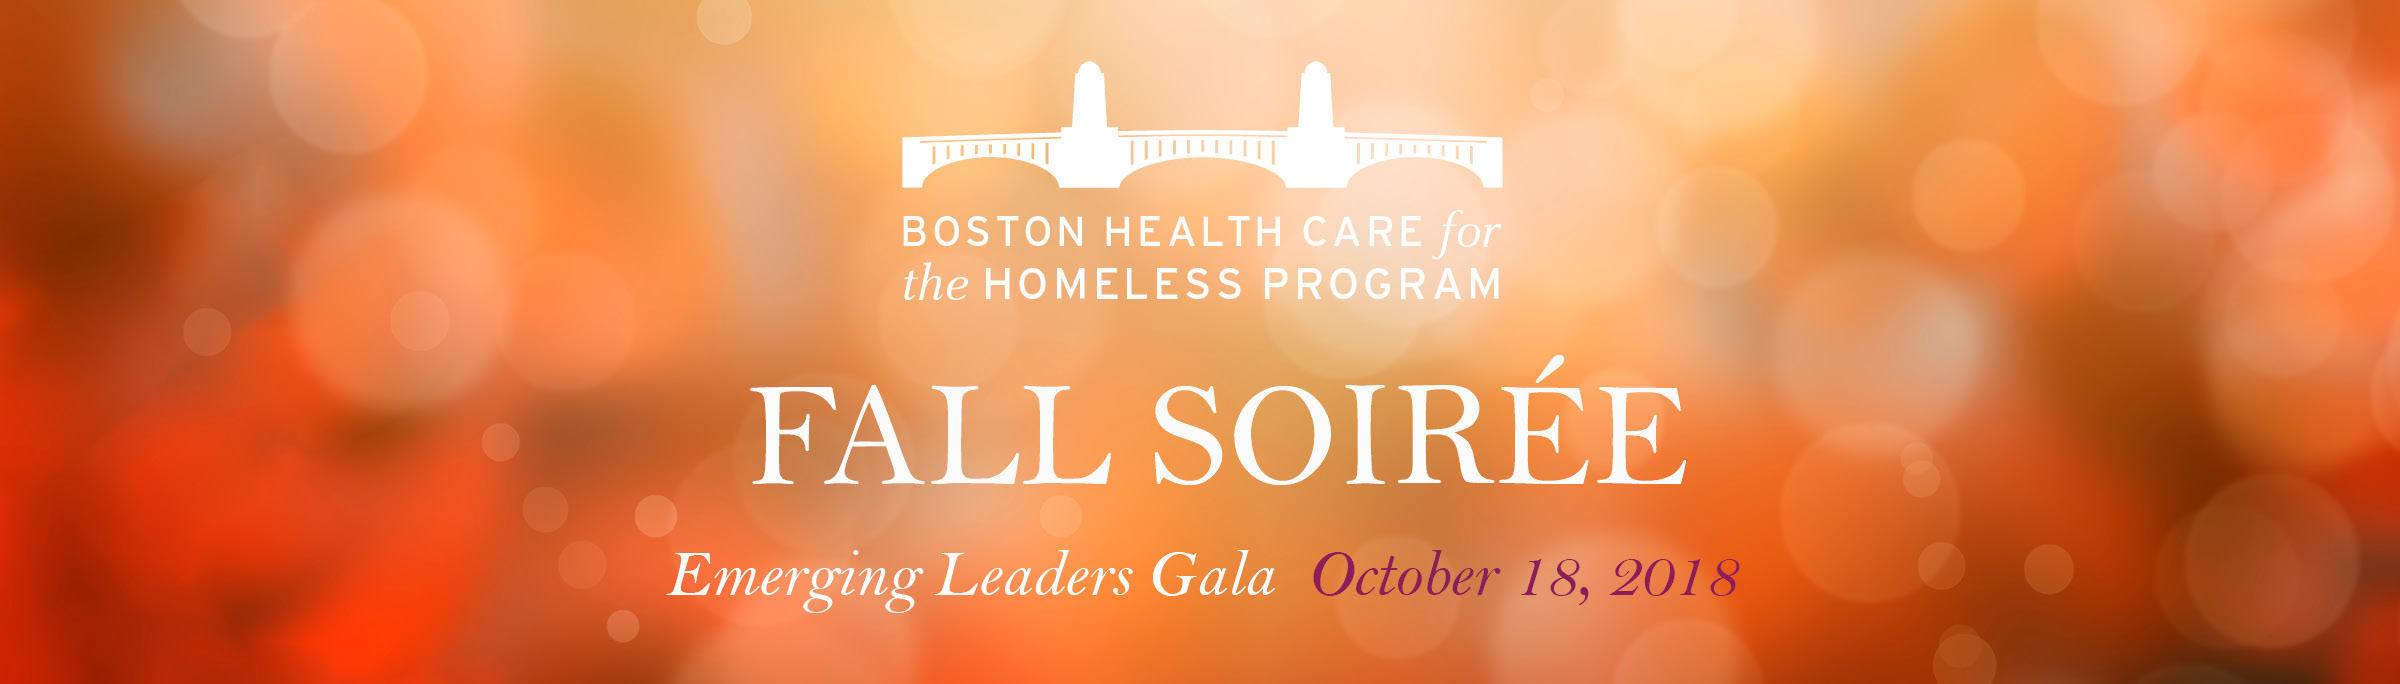 BHCHP Emerging Leaders Board Fall Soiree